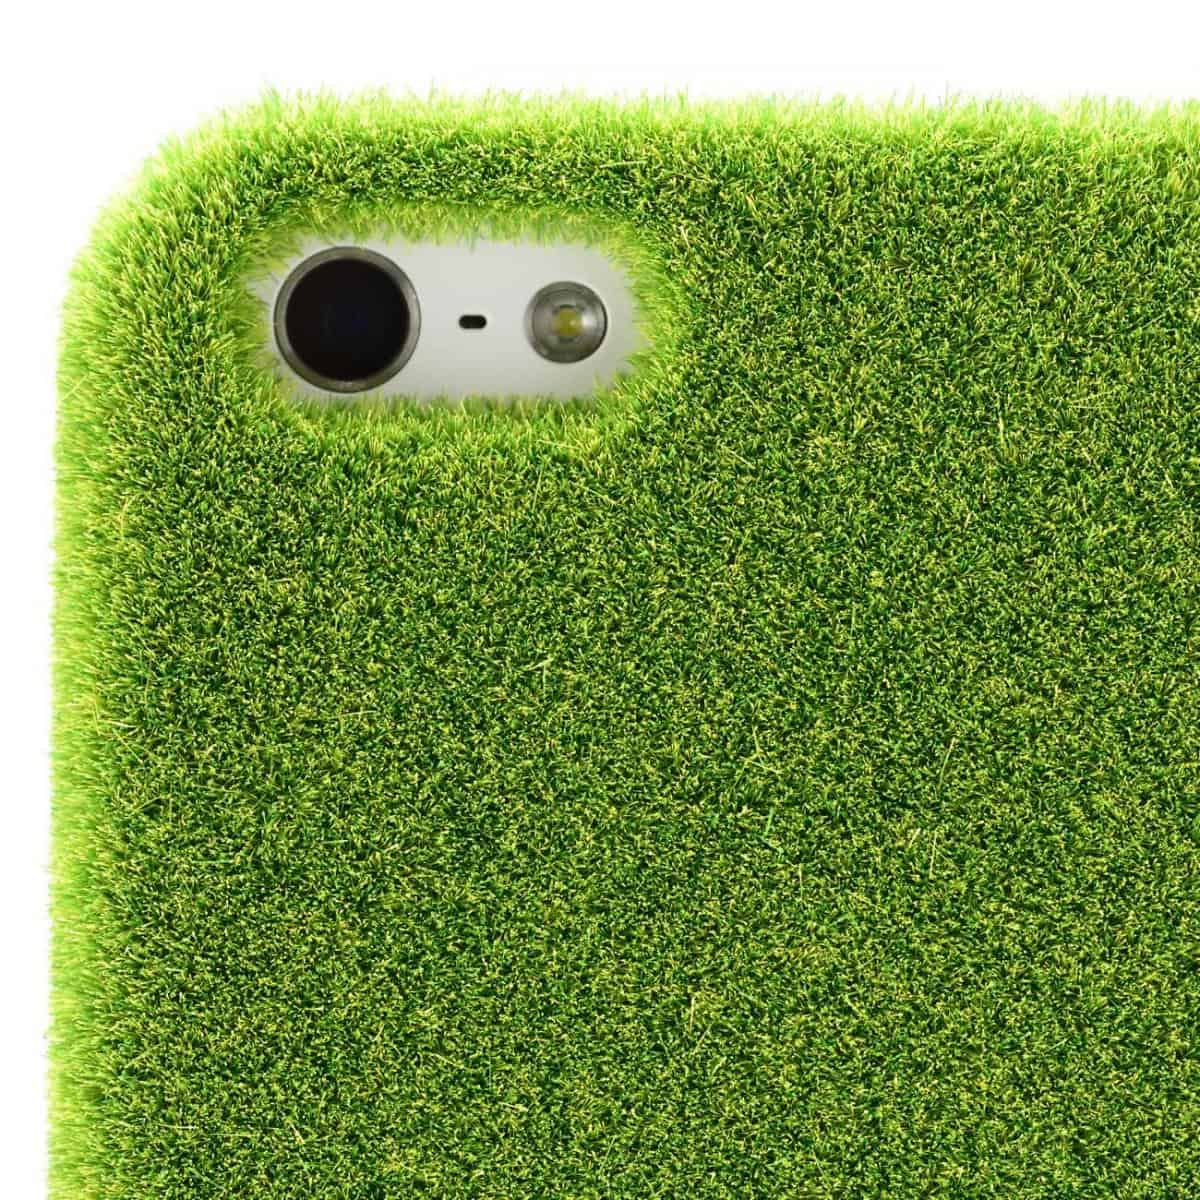 Shibaful Lush Lawn iPhone Cover Weird Things to Buy Online